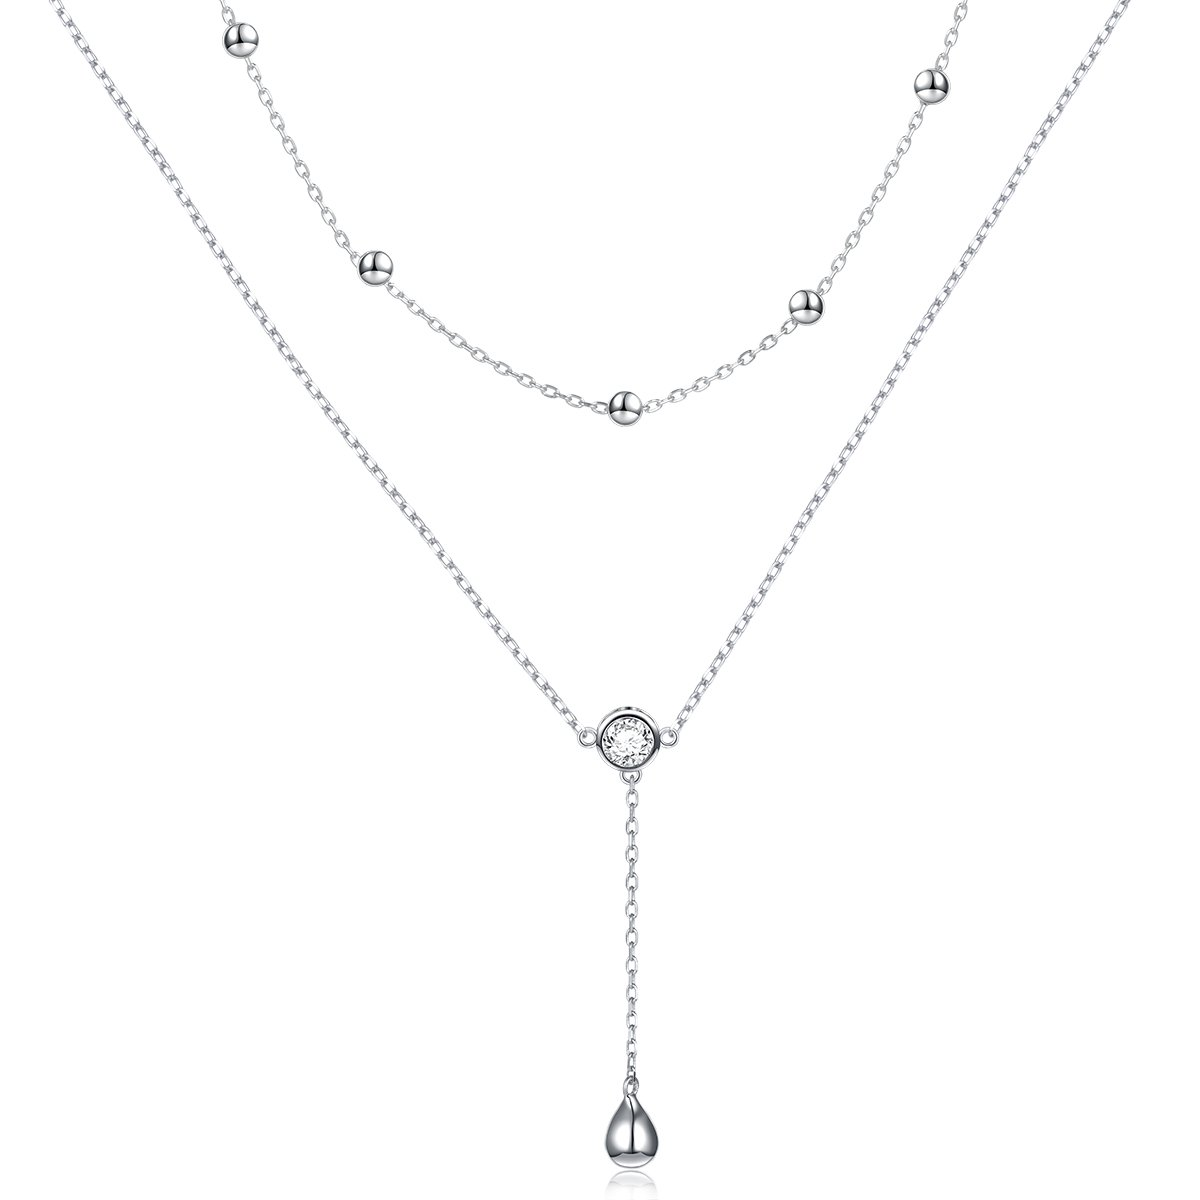 Flyow Layered Necklace S925 Sterling Silver Teardrop Double Choker Y Lariat Necklace Gifts for Women by Flyow